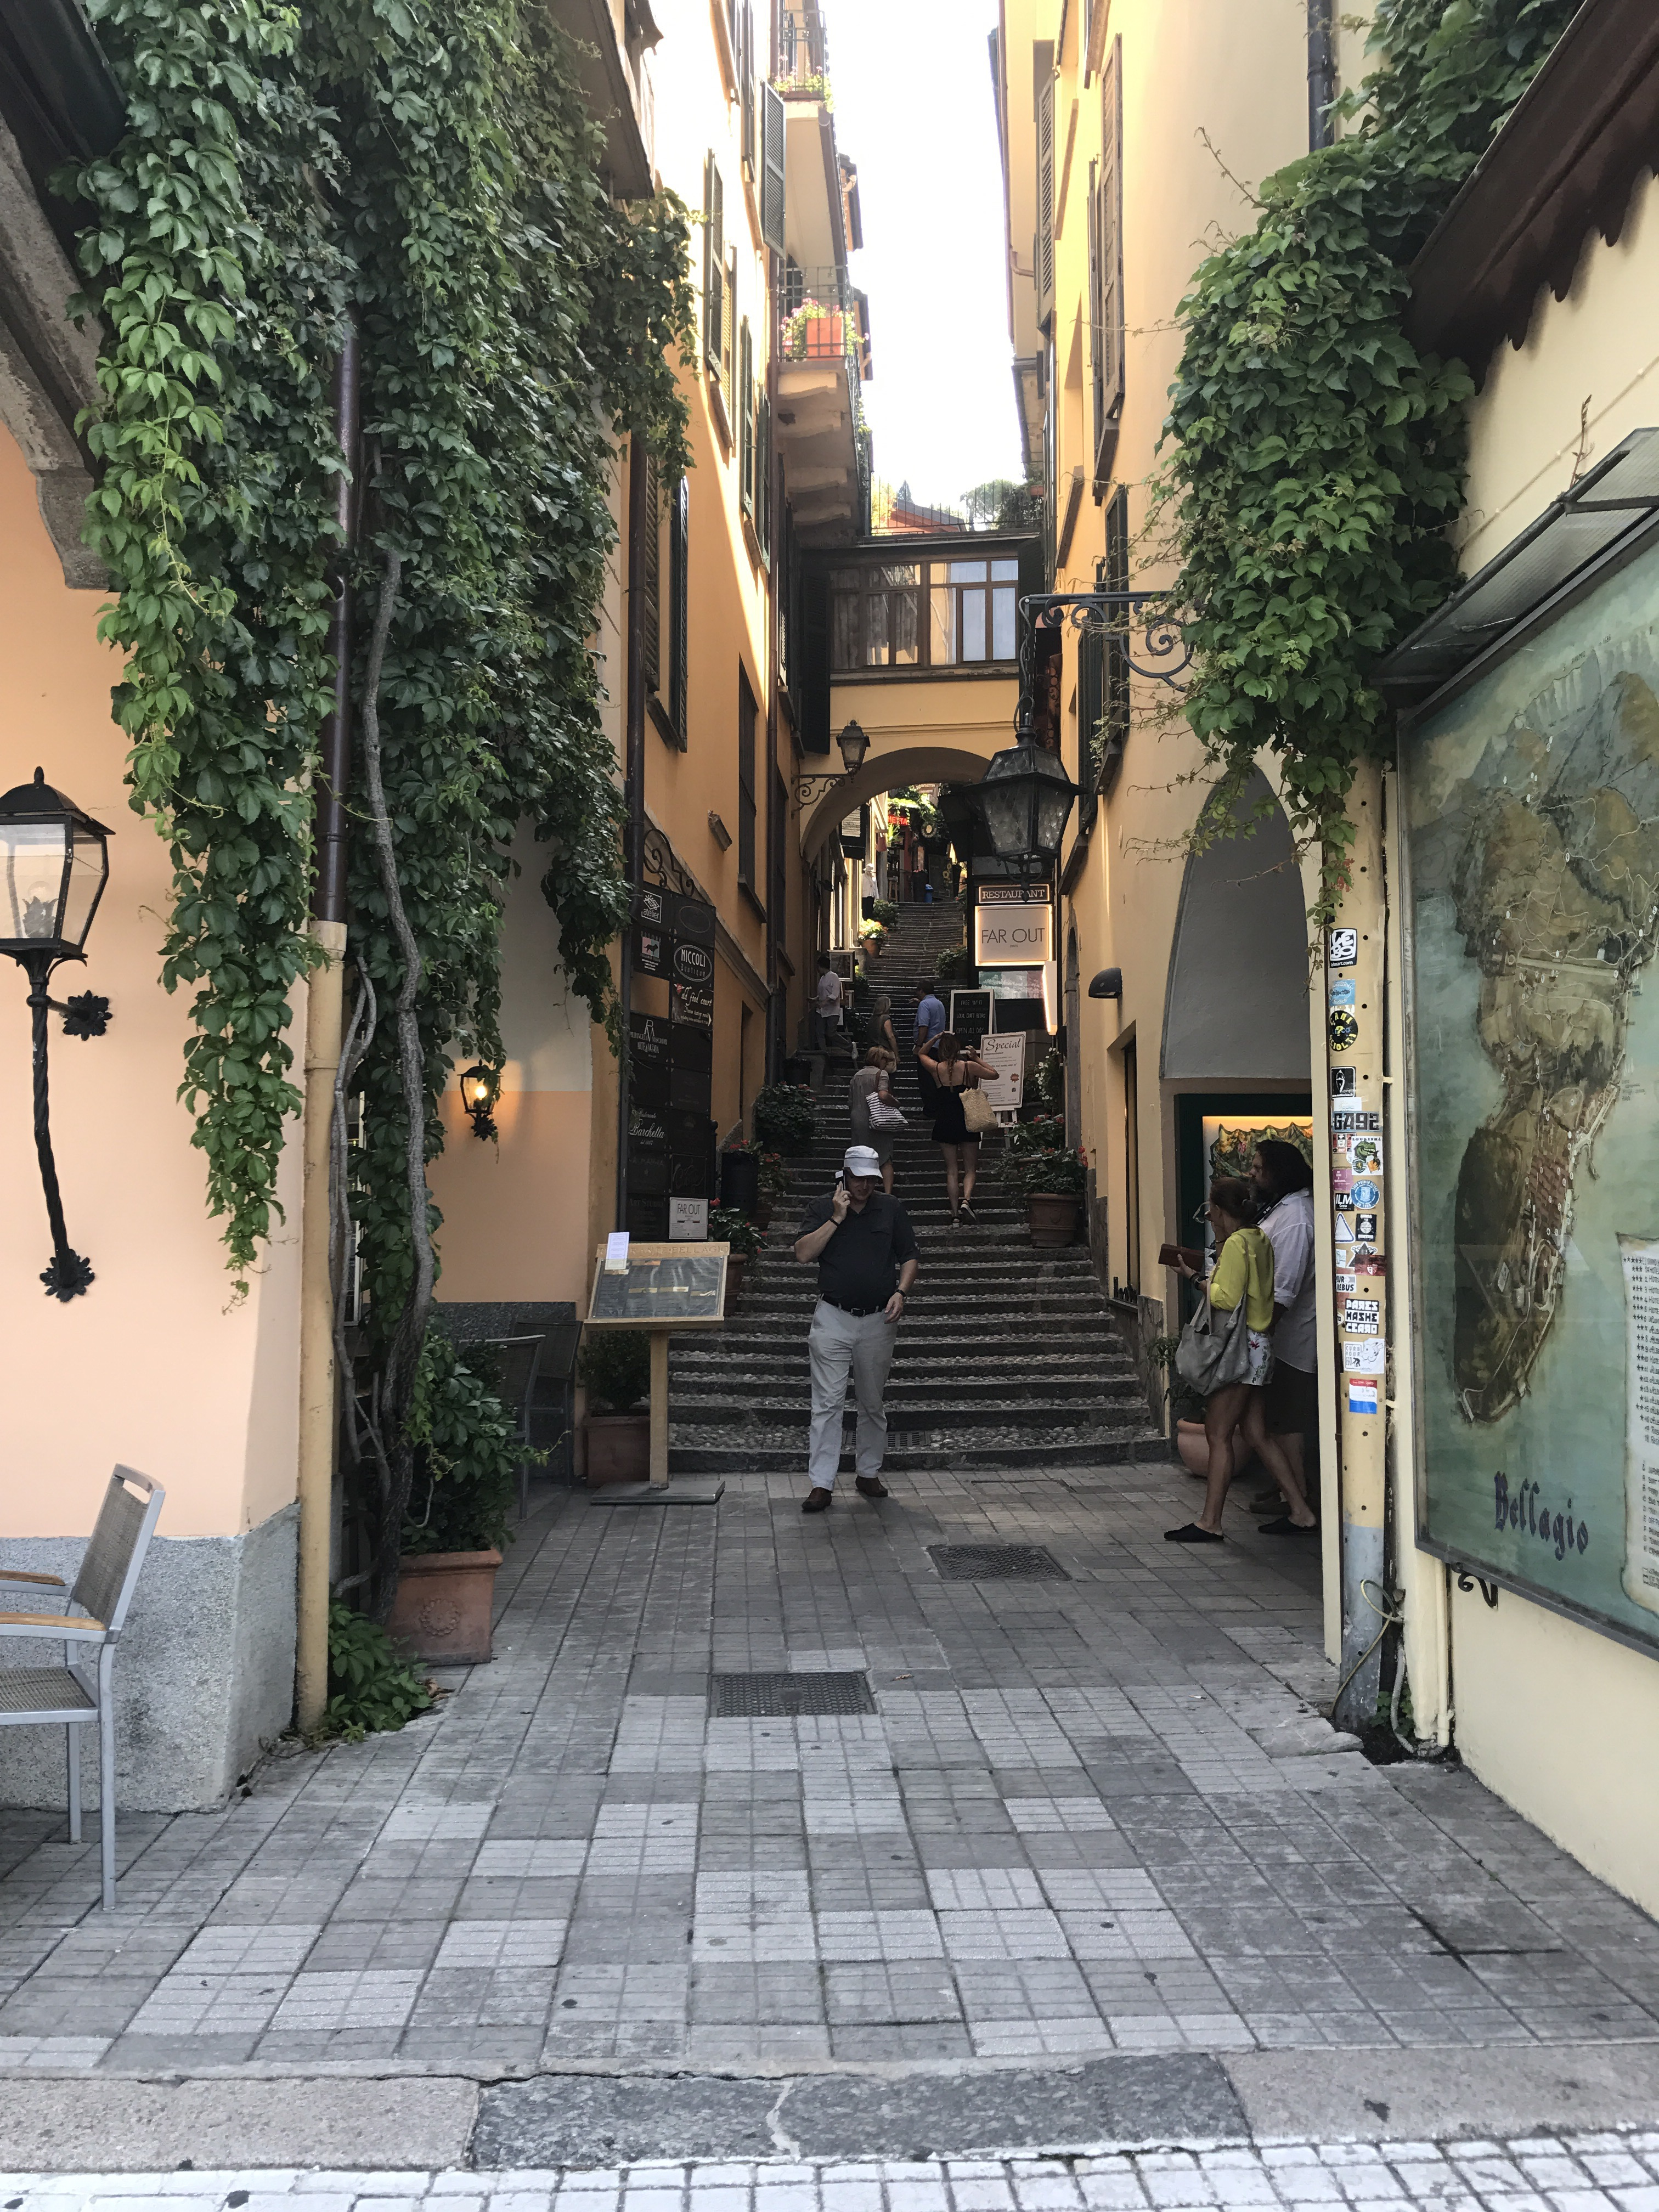 The beautiful streets of Belaggio